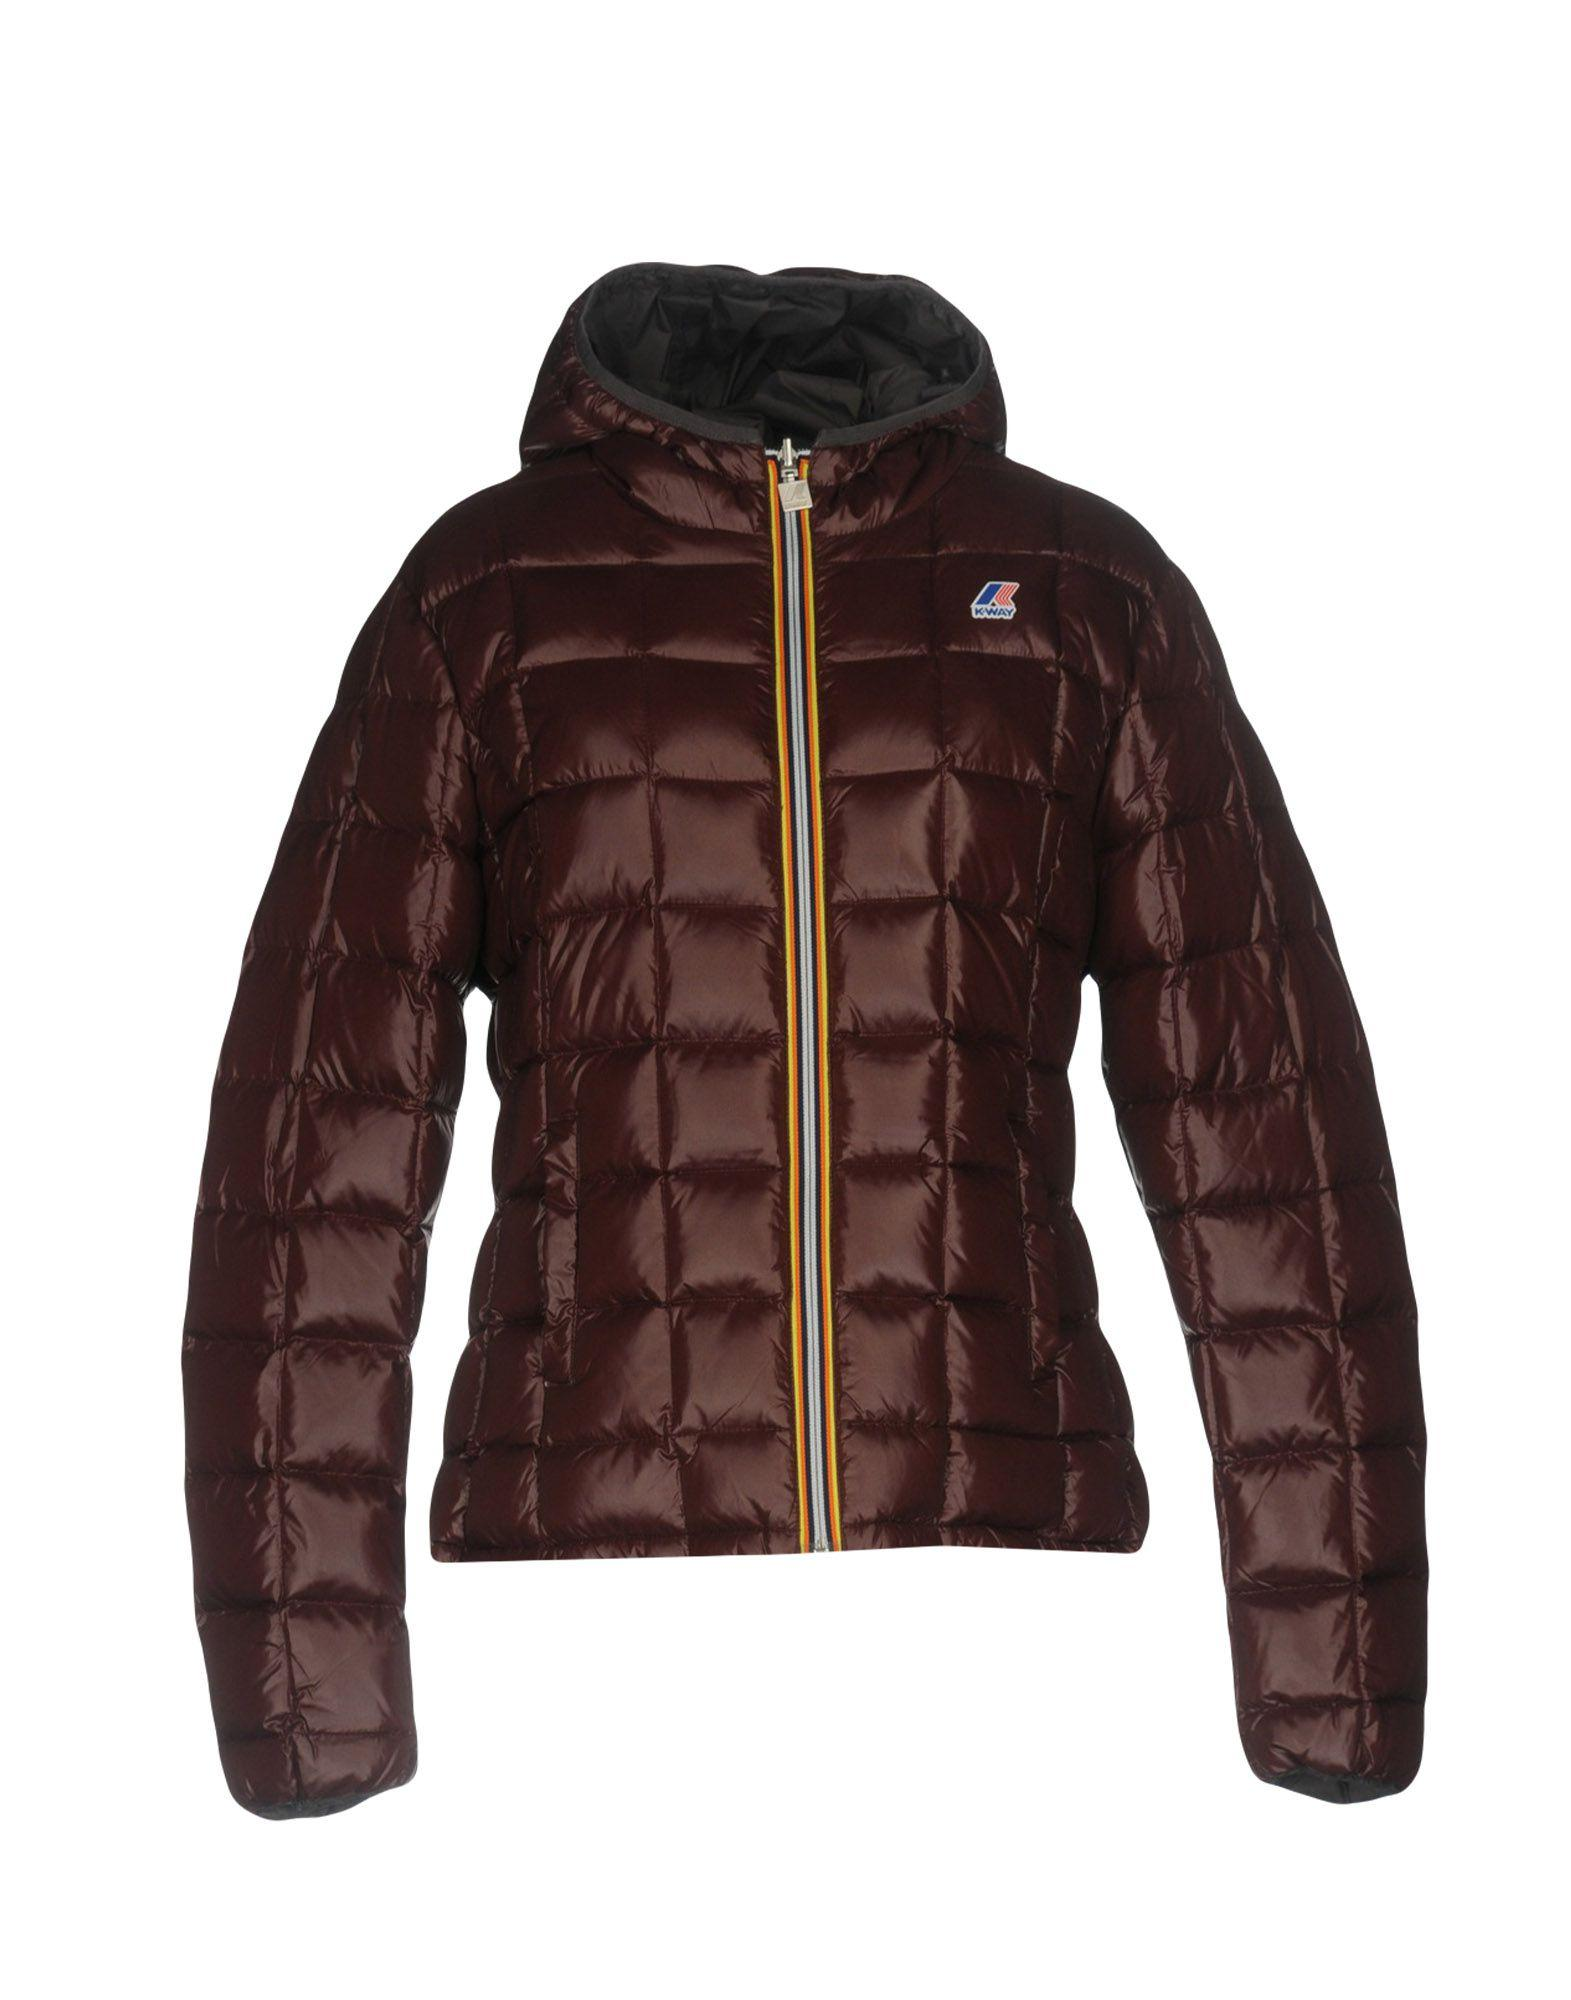 K-way Down Jackets In Cocoa